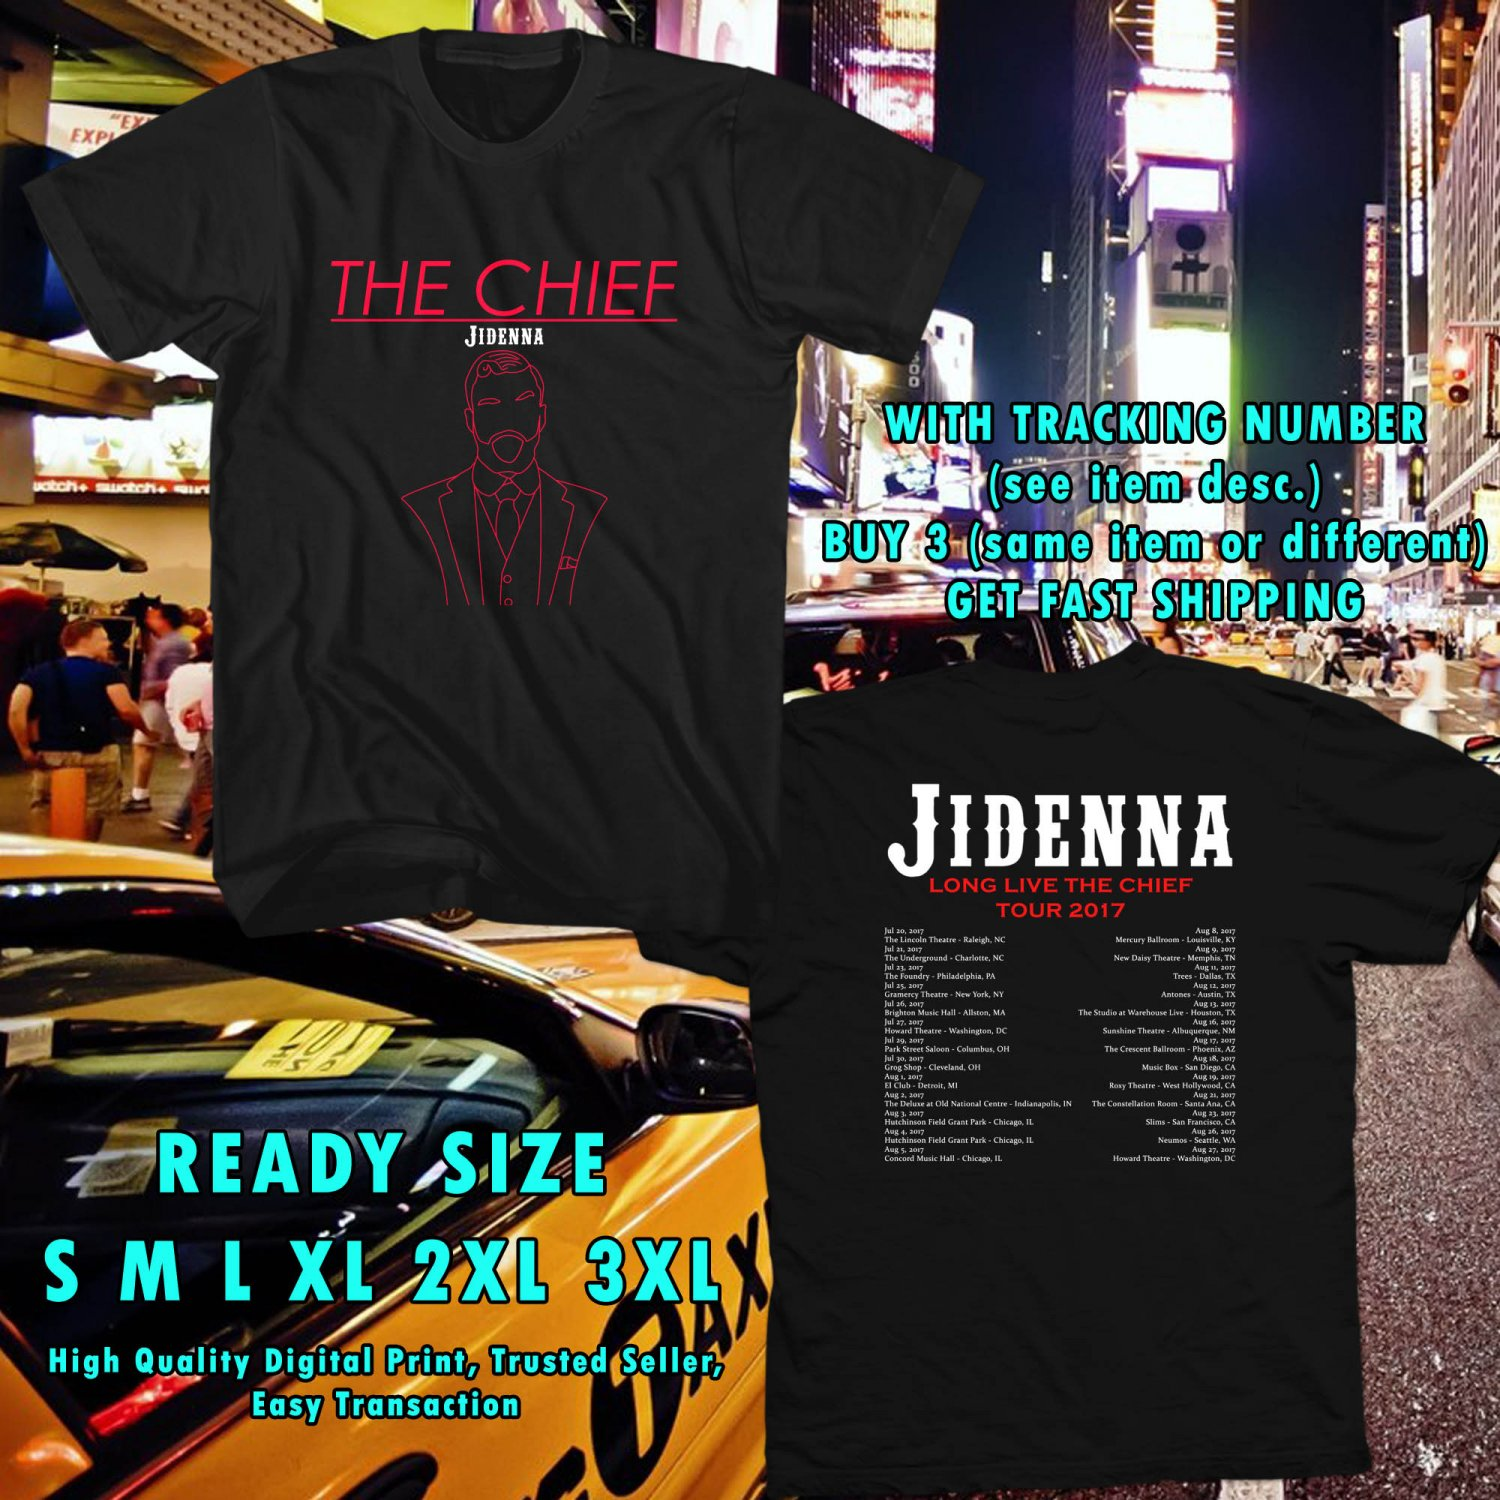 HITS JIDENNA LONG LIVE THE CHIEF TOUR 2017 BLACK TEE'S 2SIDE ASTR 221